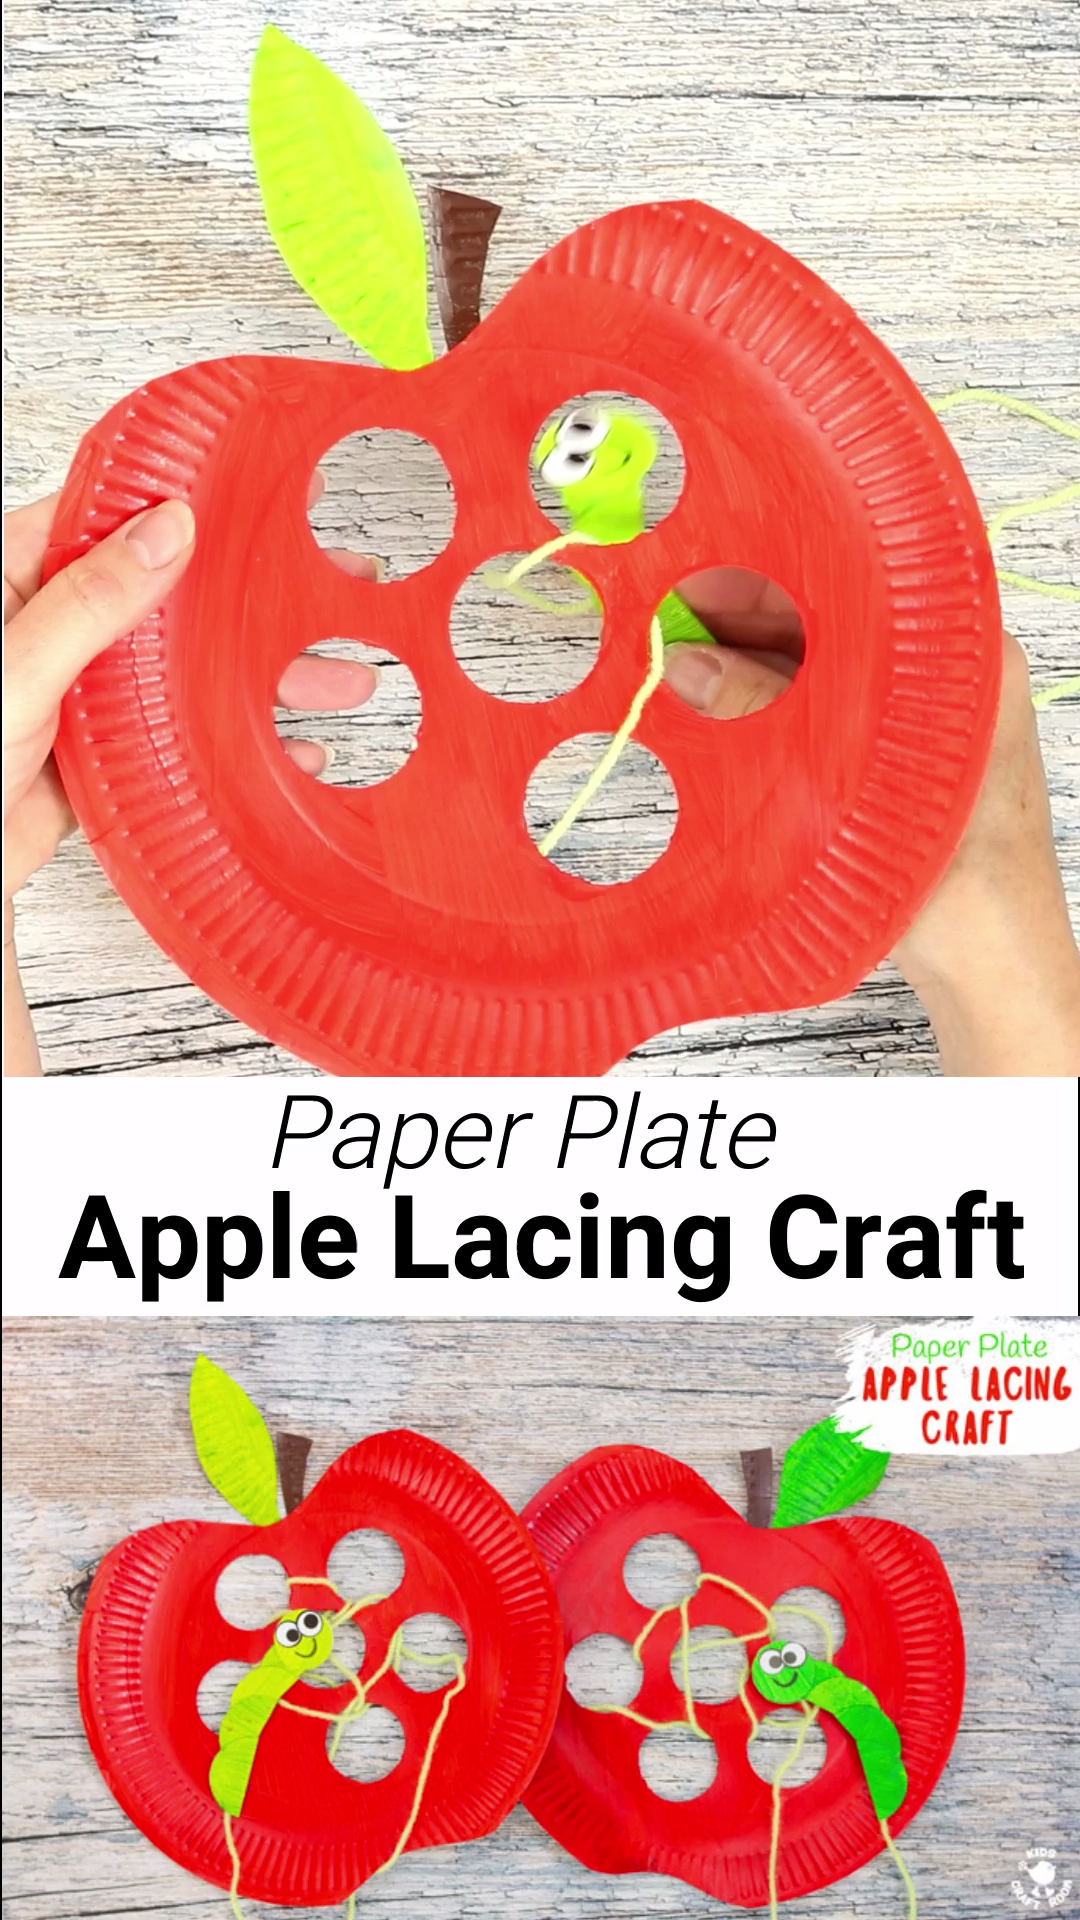 Apple Lacing Craft #kids